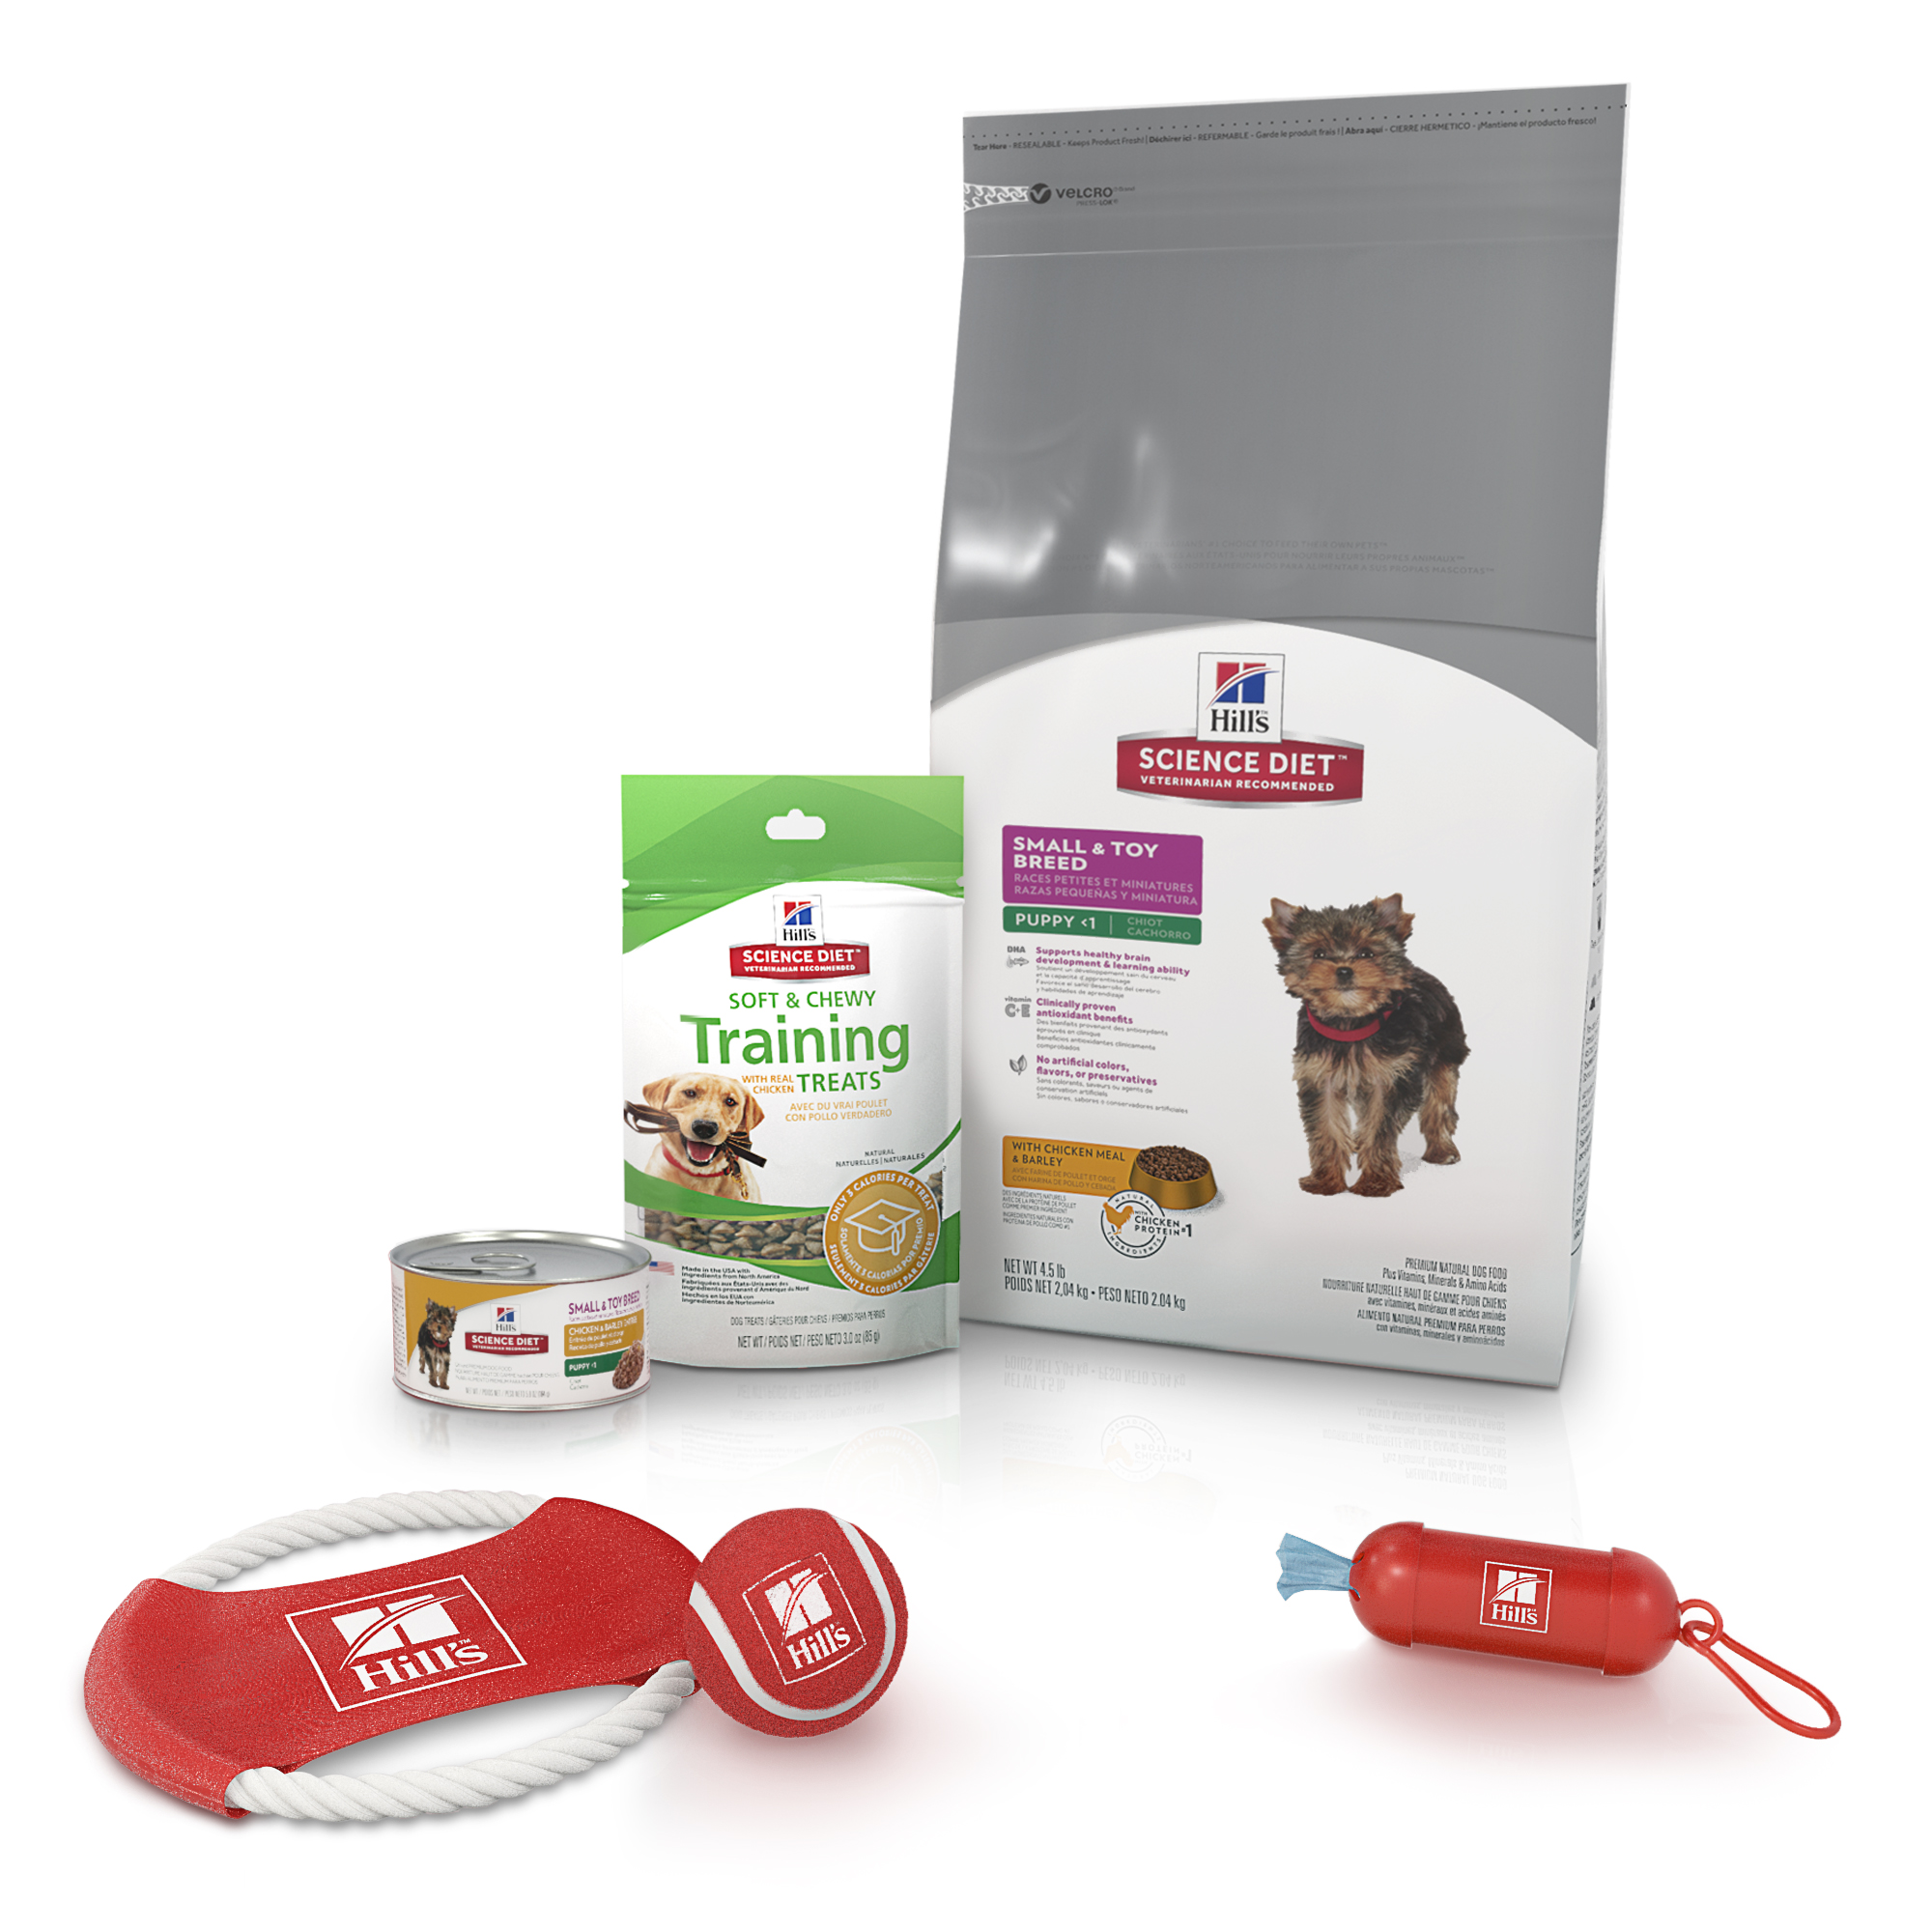 Hill's Science Diet (Spend $20, Get $5) Puppy Starter Kit Small & Toy Breed, Including Dry & Wet Food, Treats & Toys (See description for rebate details)